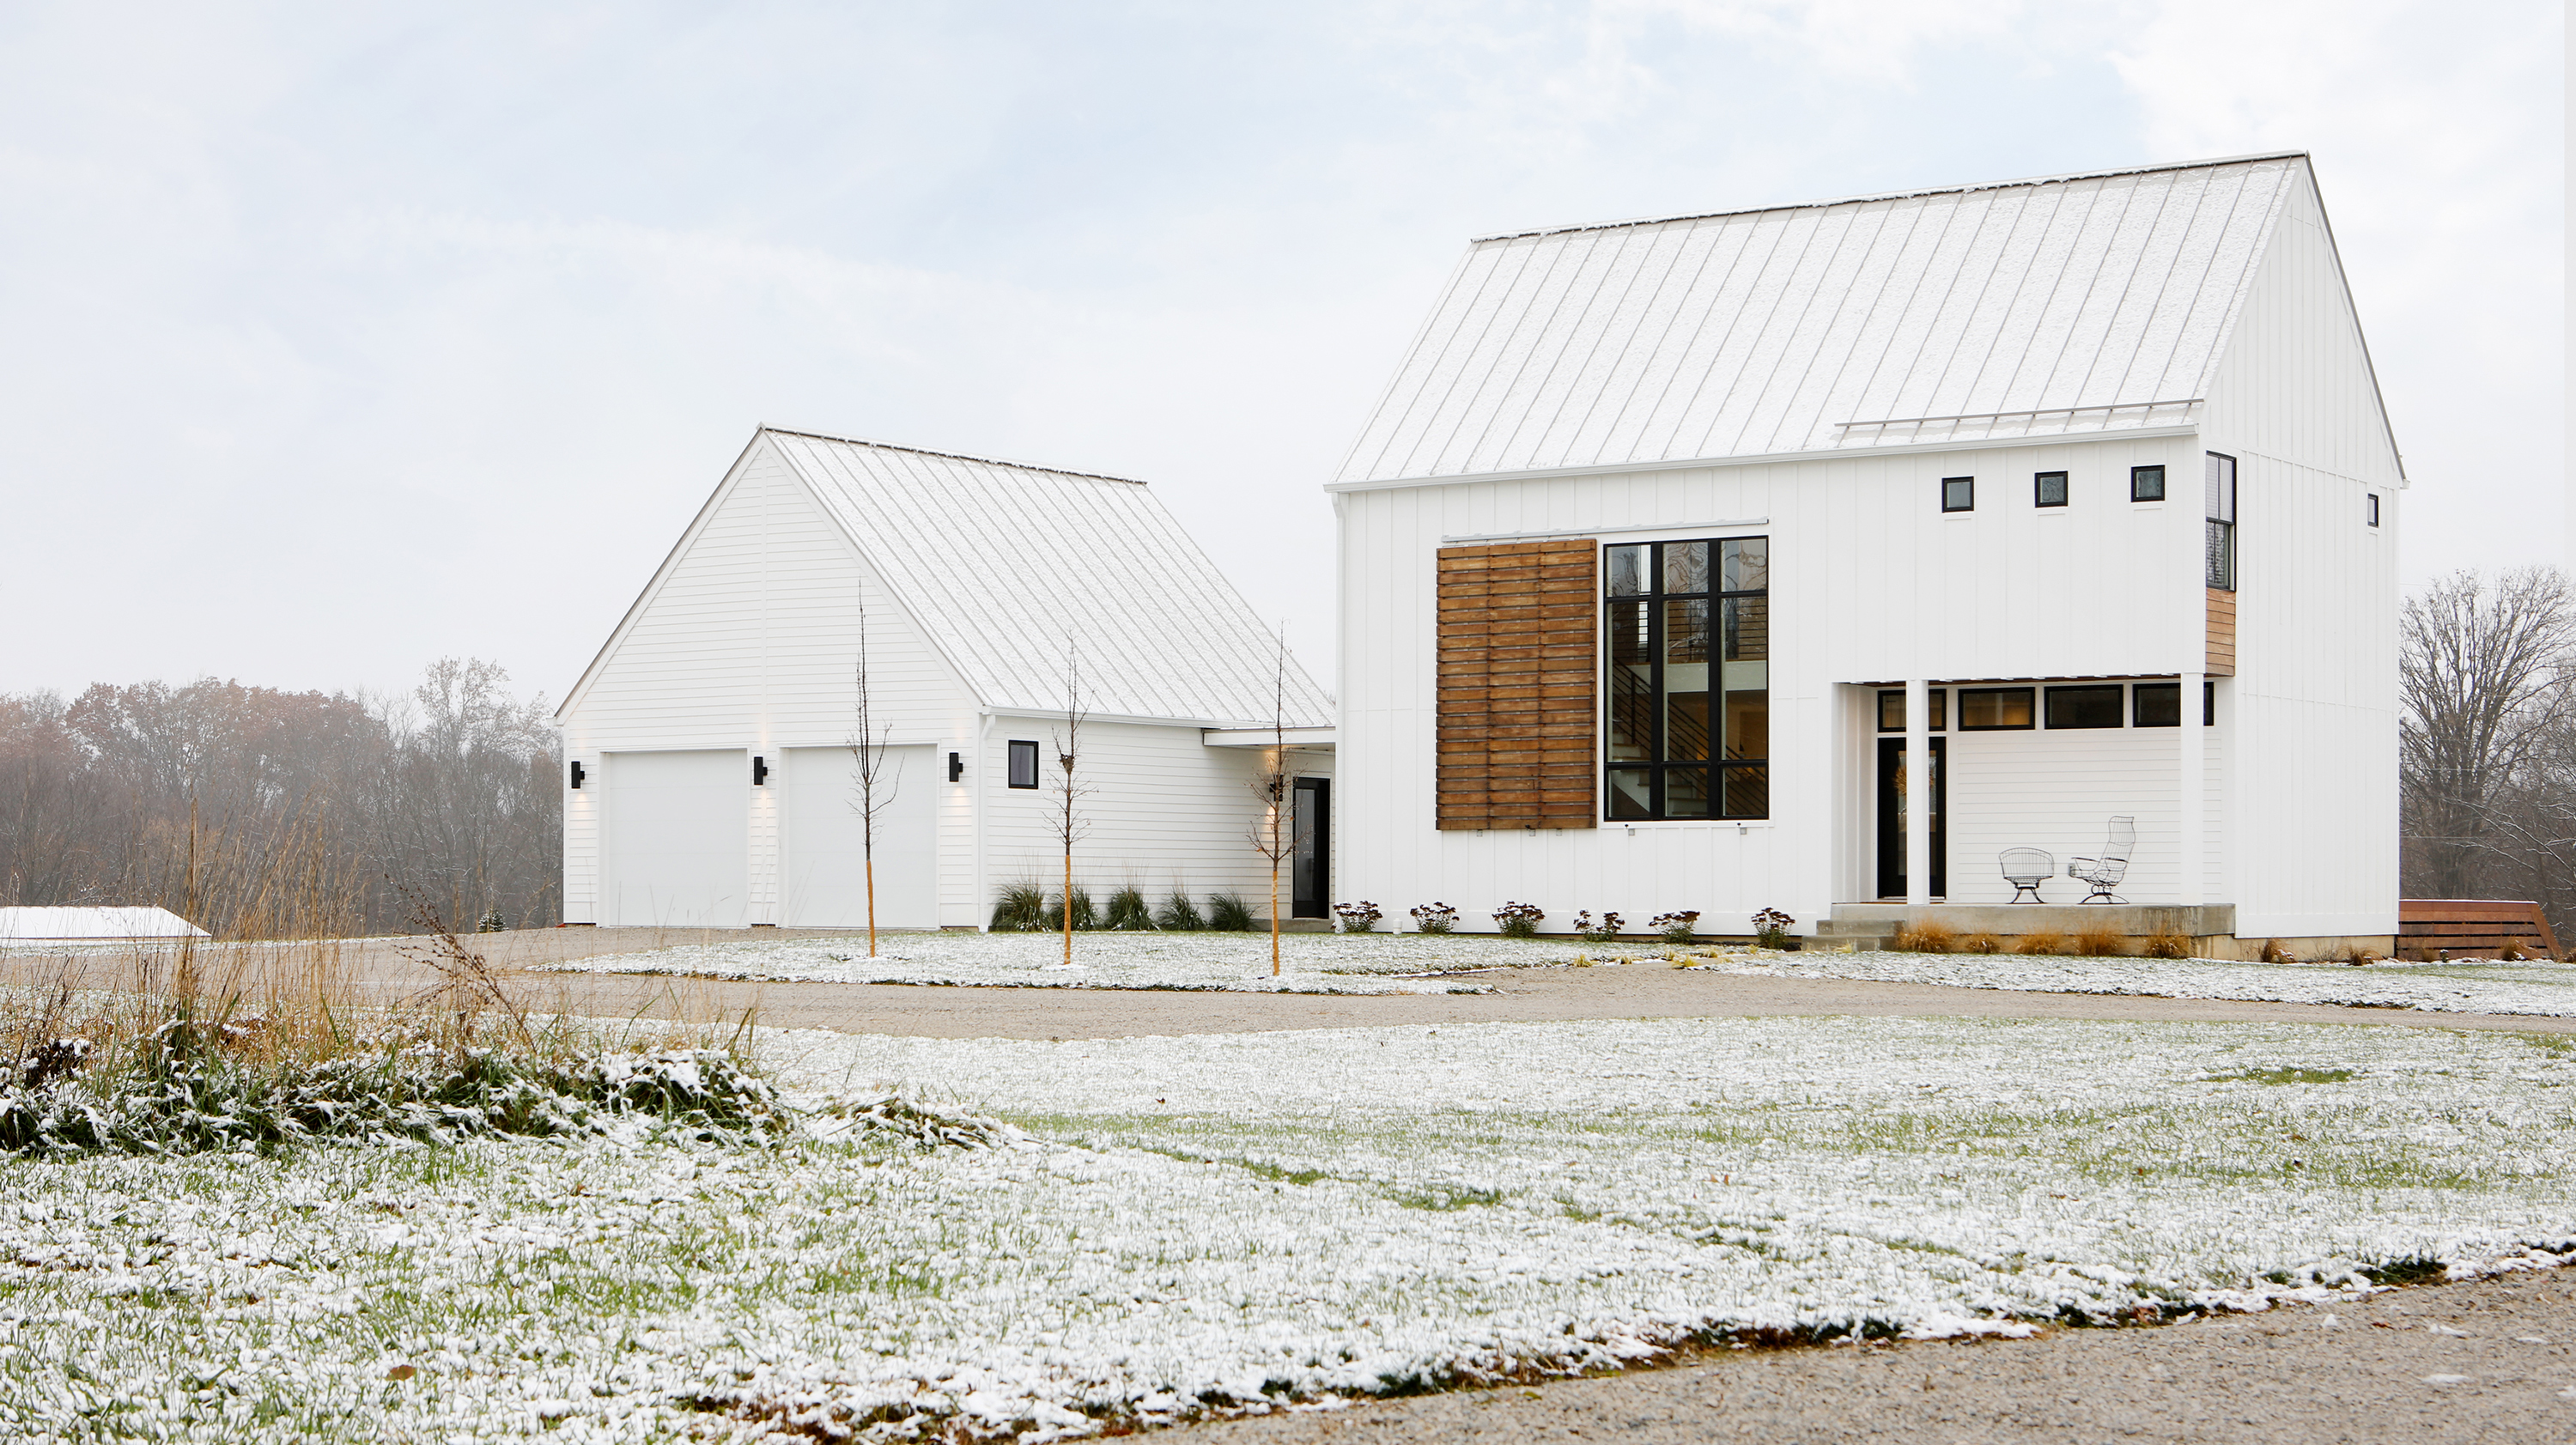 The exterior of two buildings. Both buildings are painted white. In the foreground is a lawn covered in frost and snow.